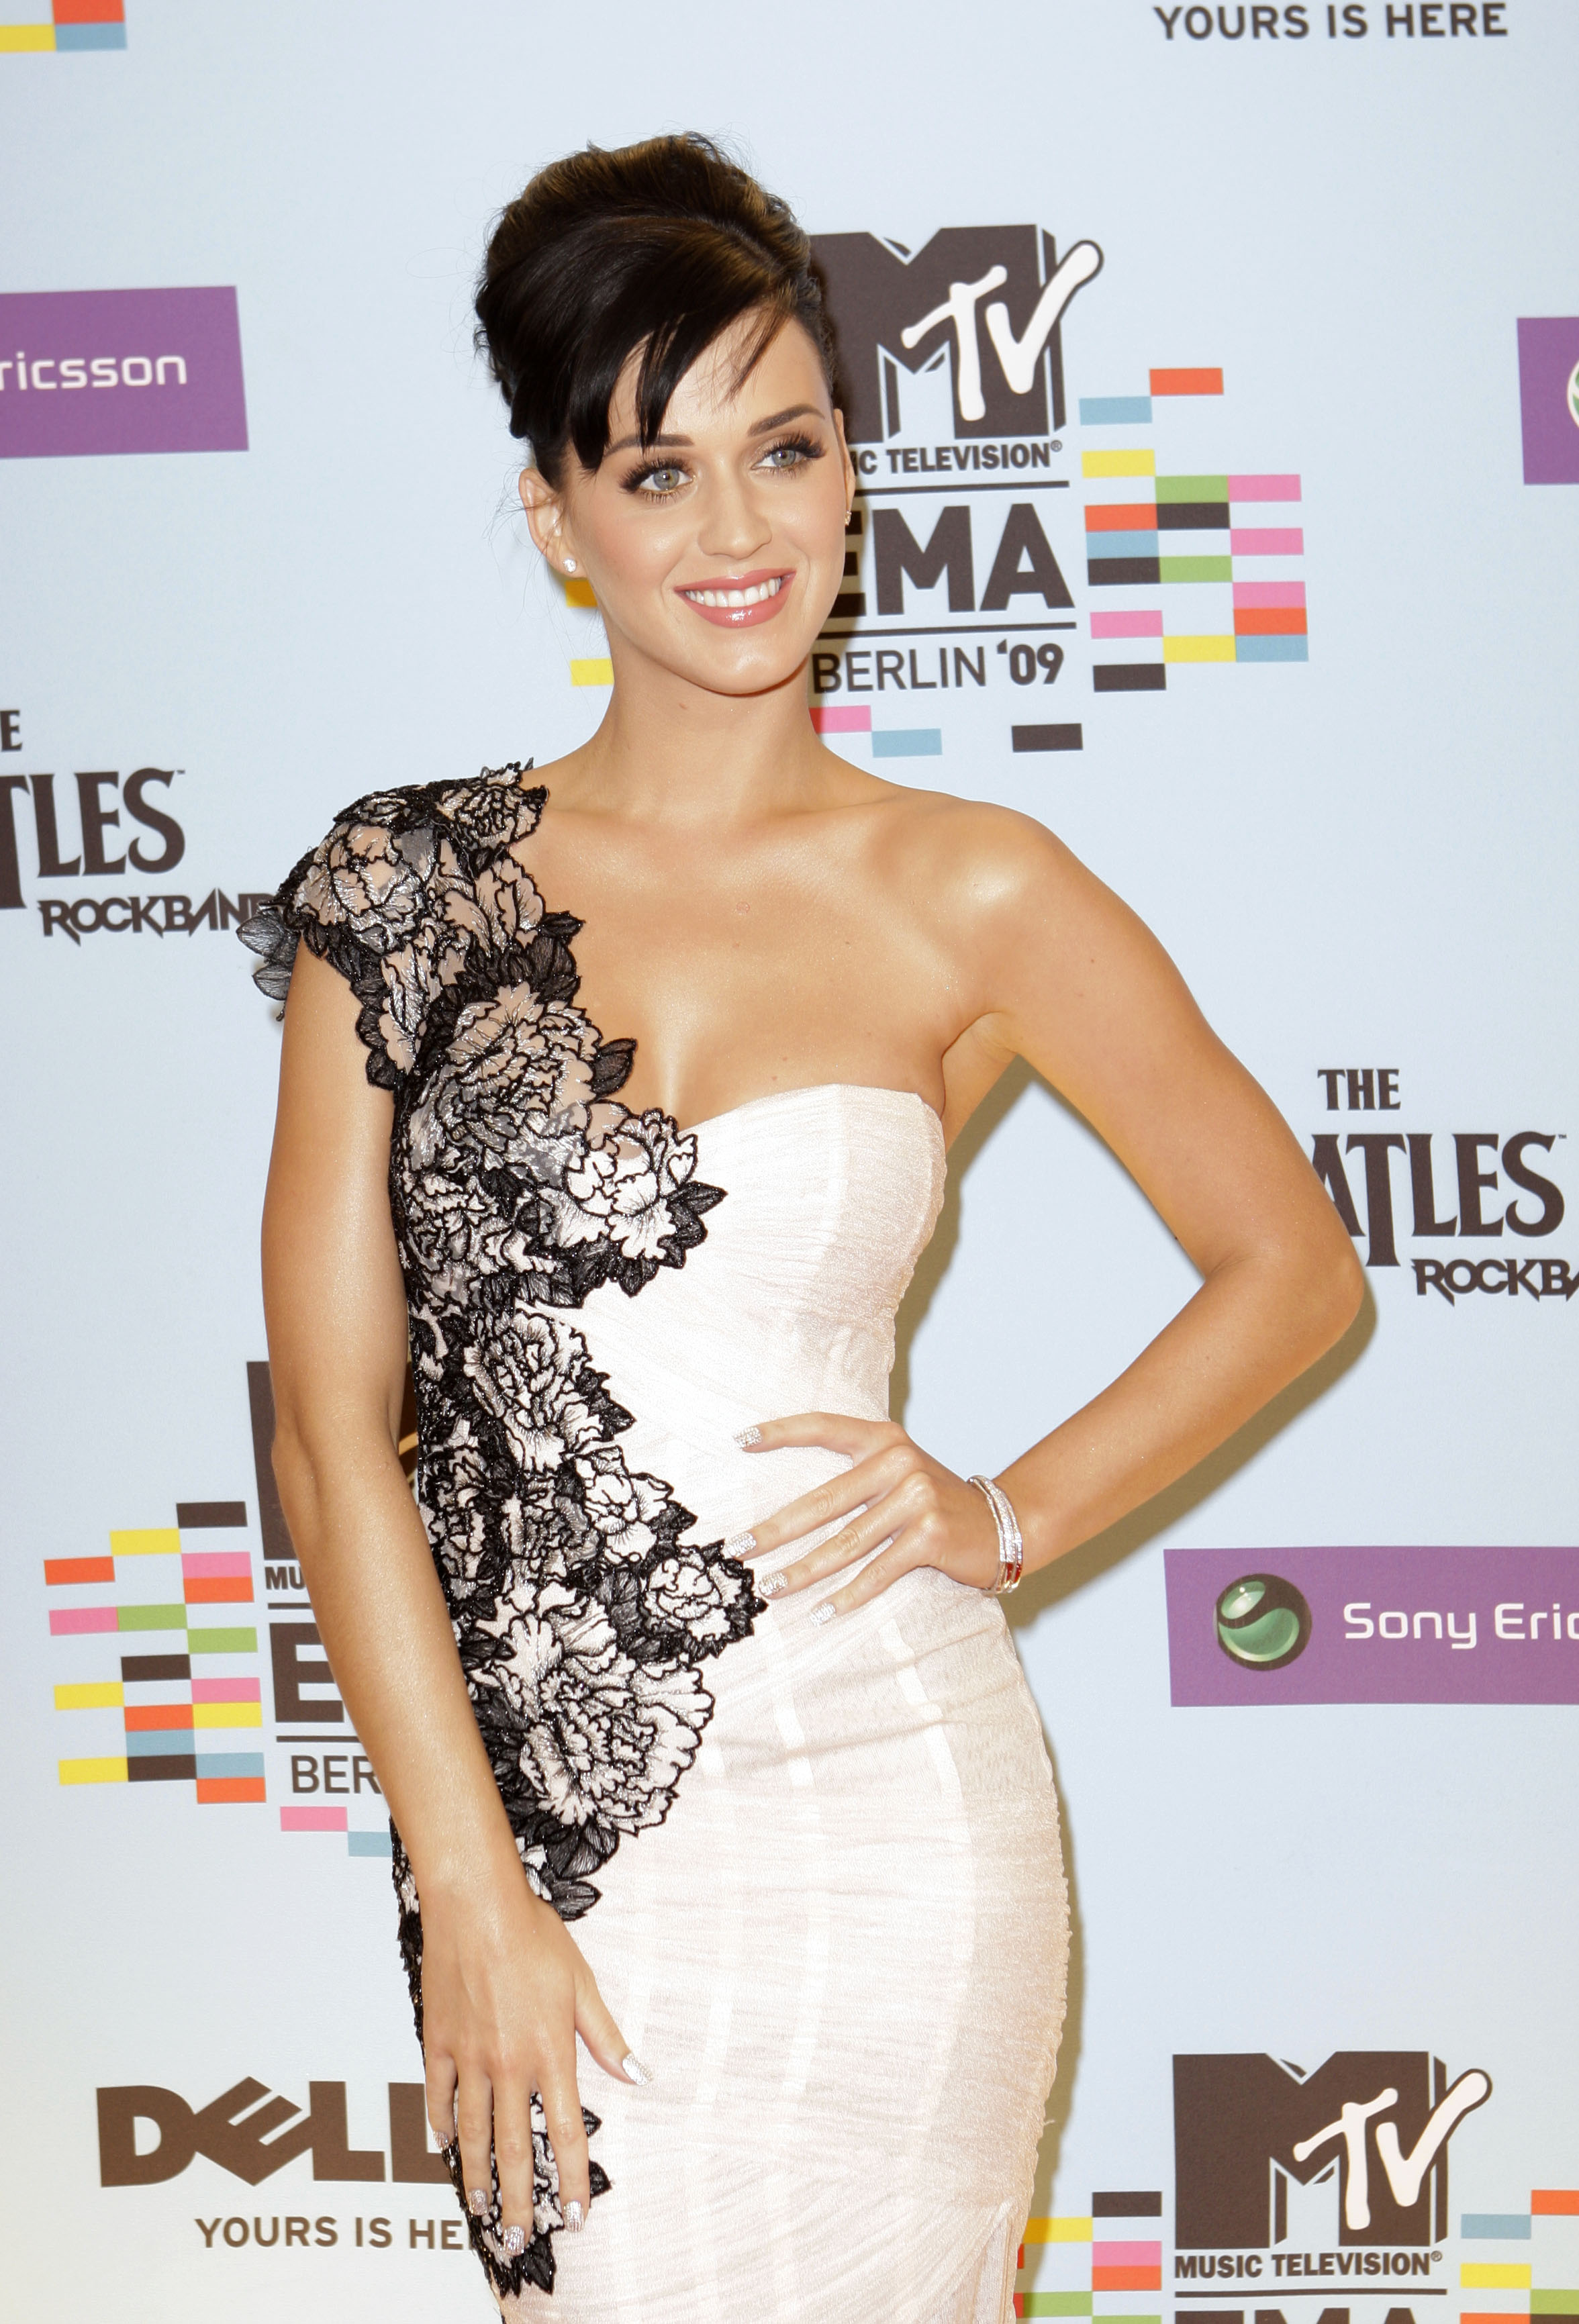 Katy-Perry-MTV-Europe-Awards